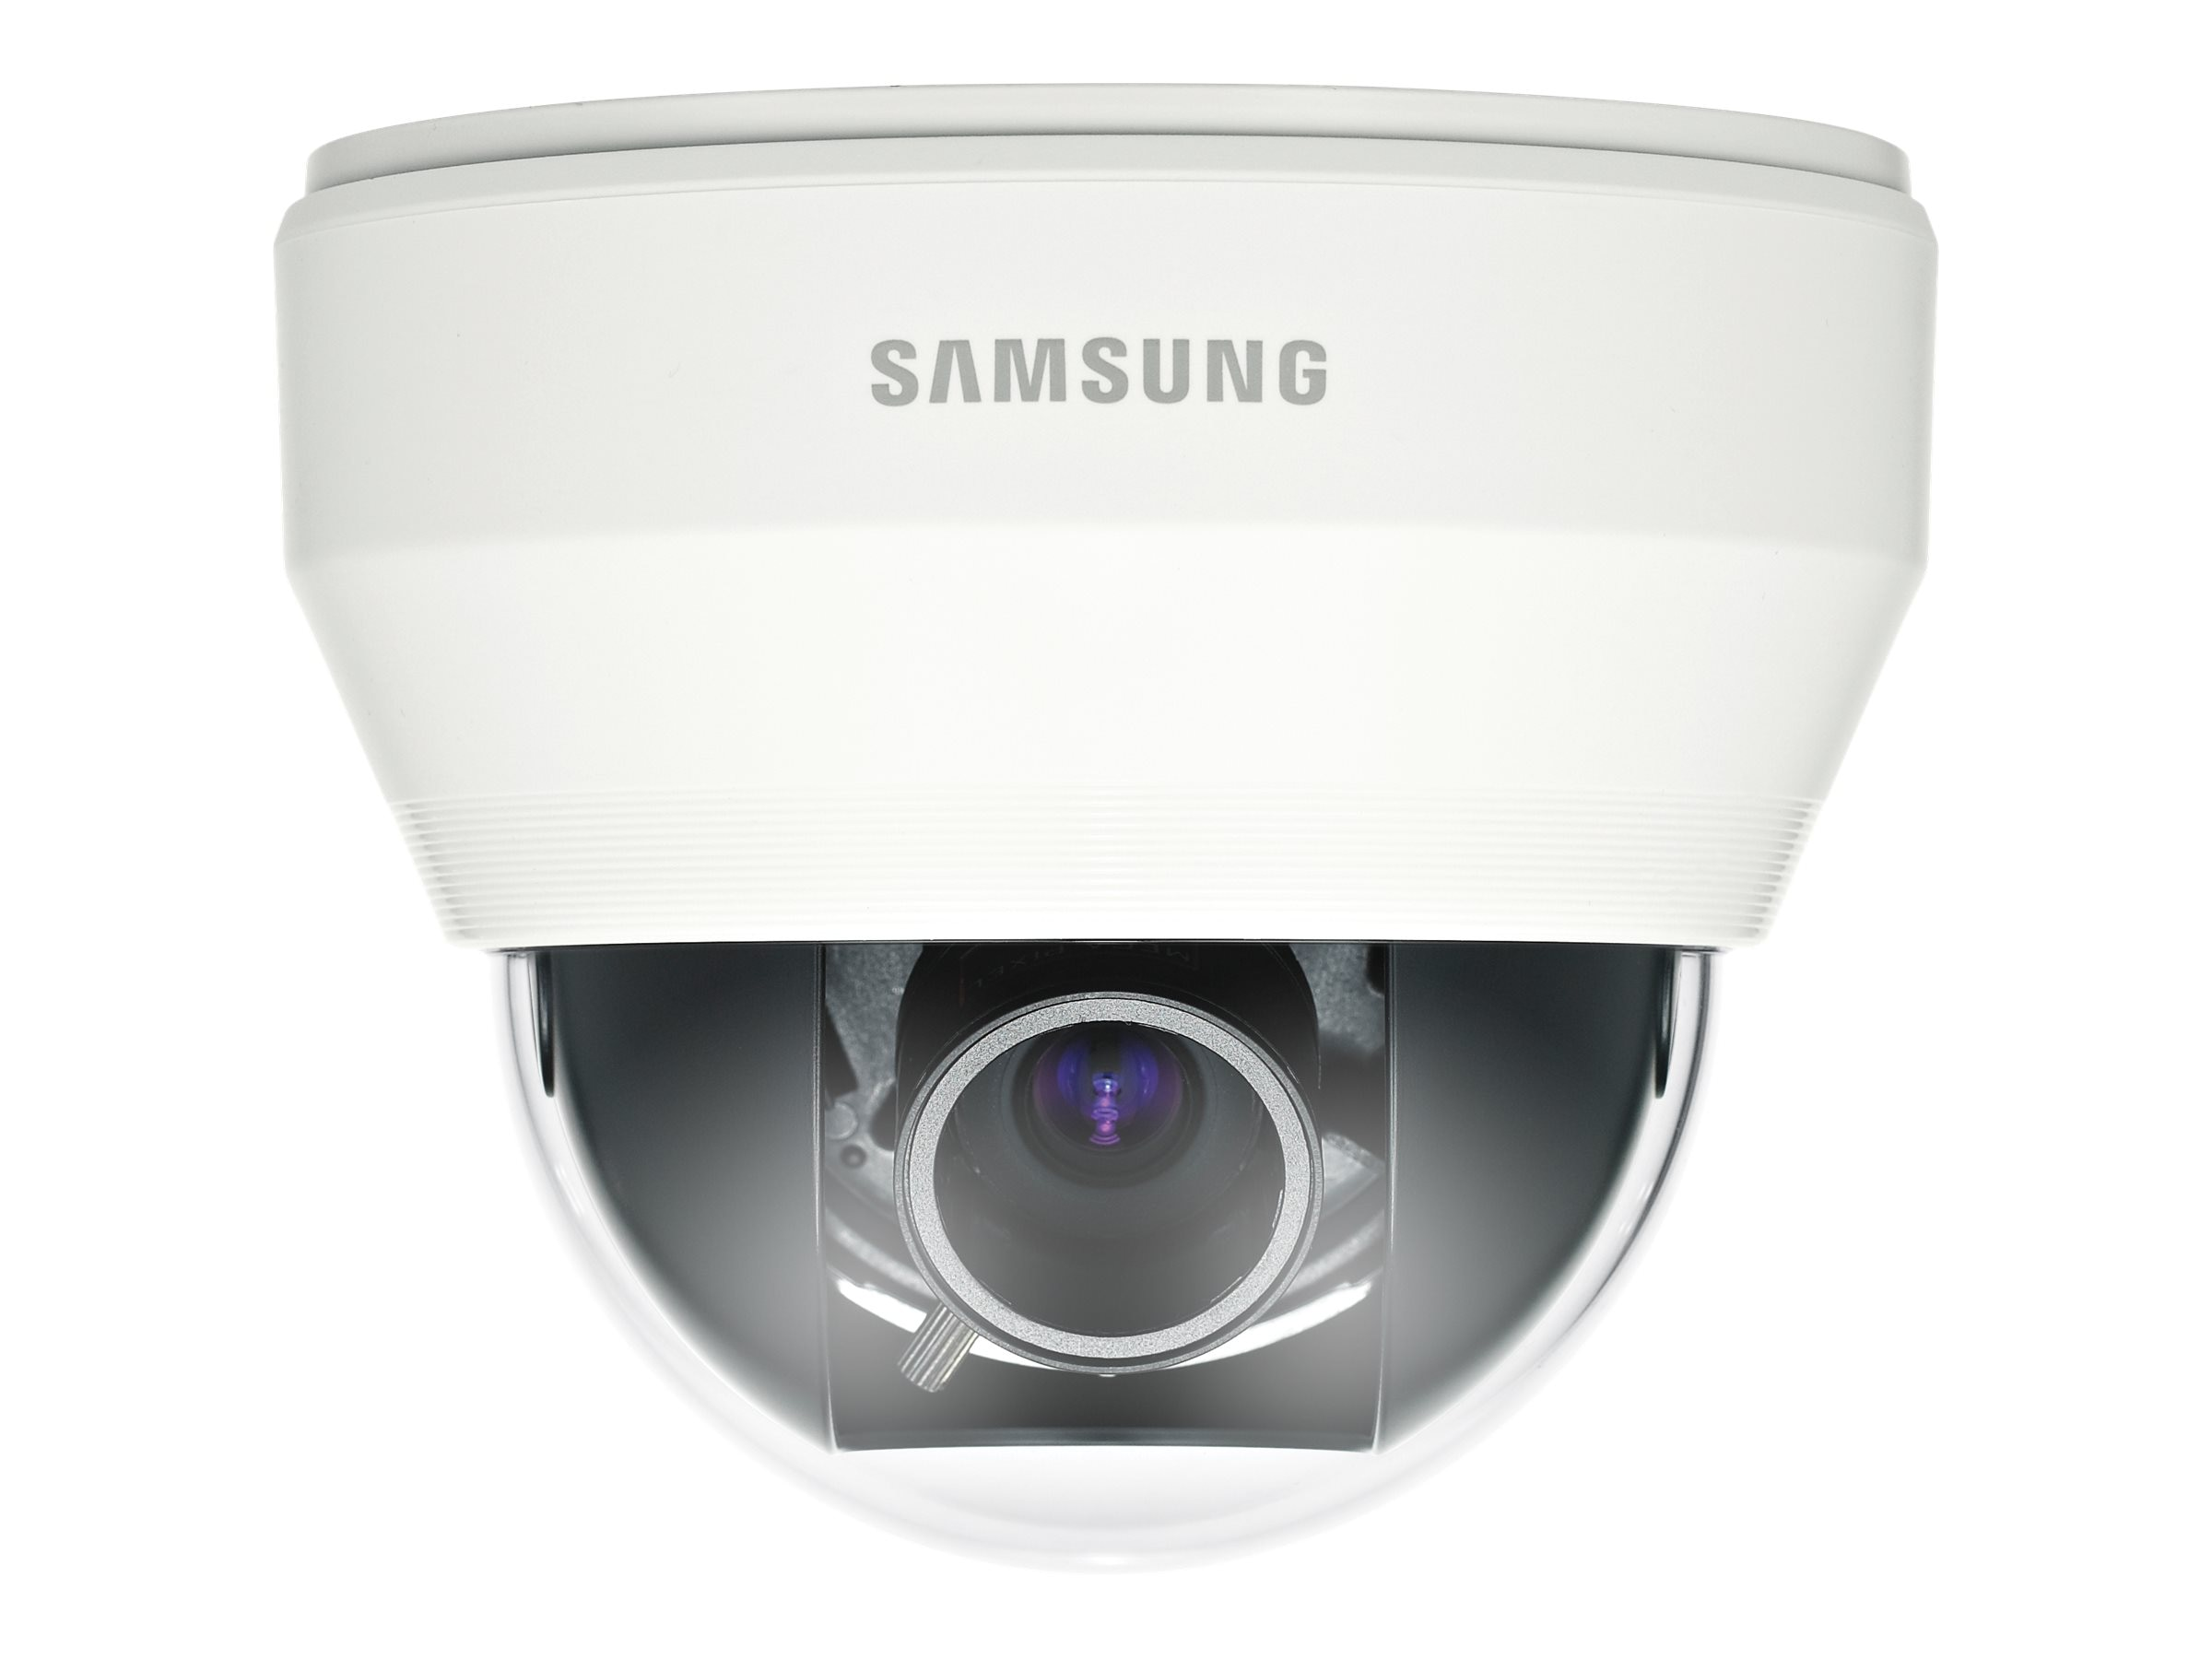 Samsung 1280H Wide Dynamic Range Varifocal Dome Camera, White, SCD-5083